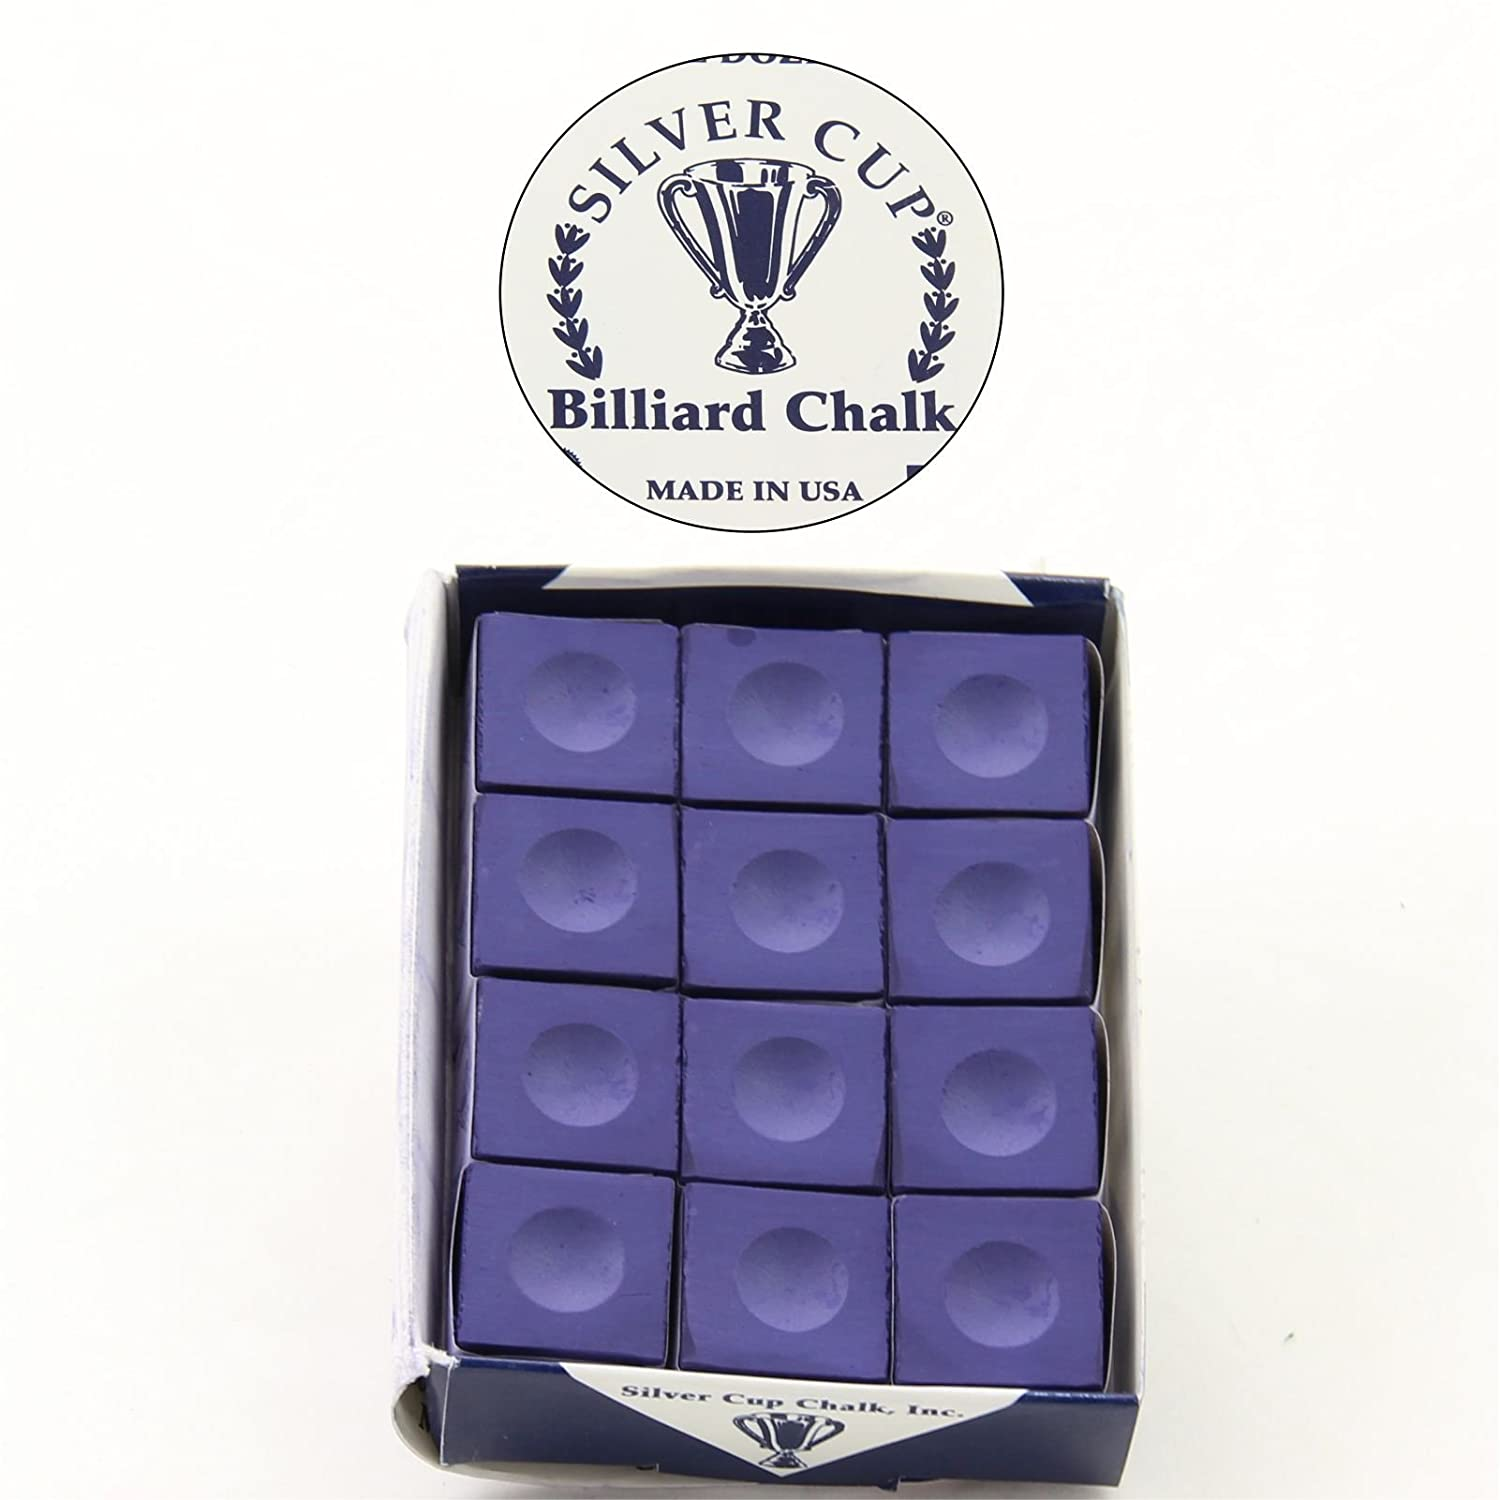 12 blocks - 1 x box of high quality sliver cup Purple chalks, Silver cup